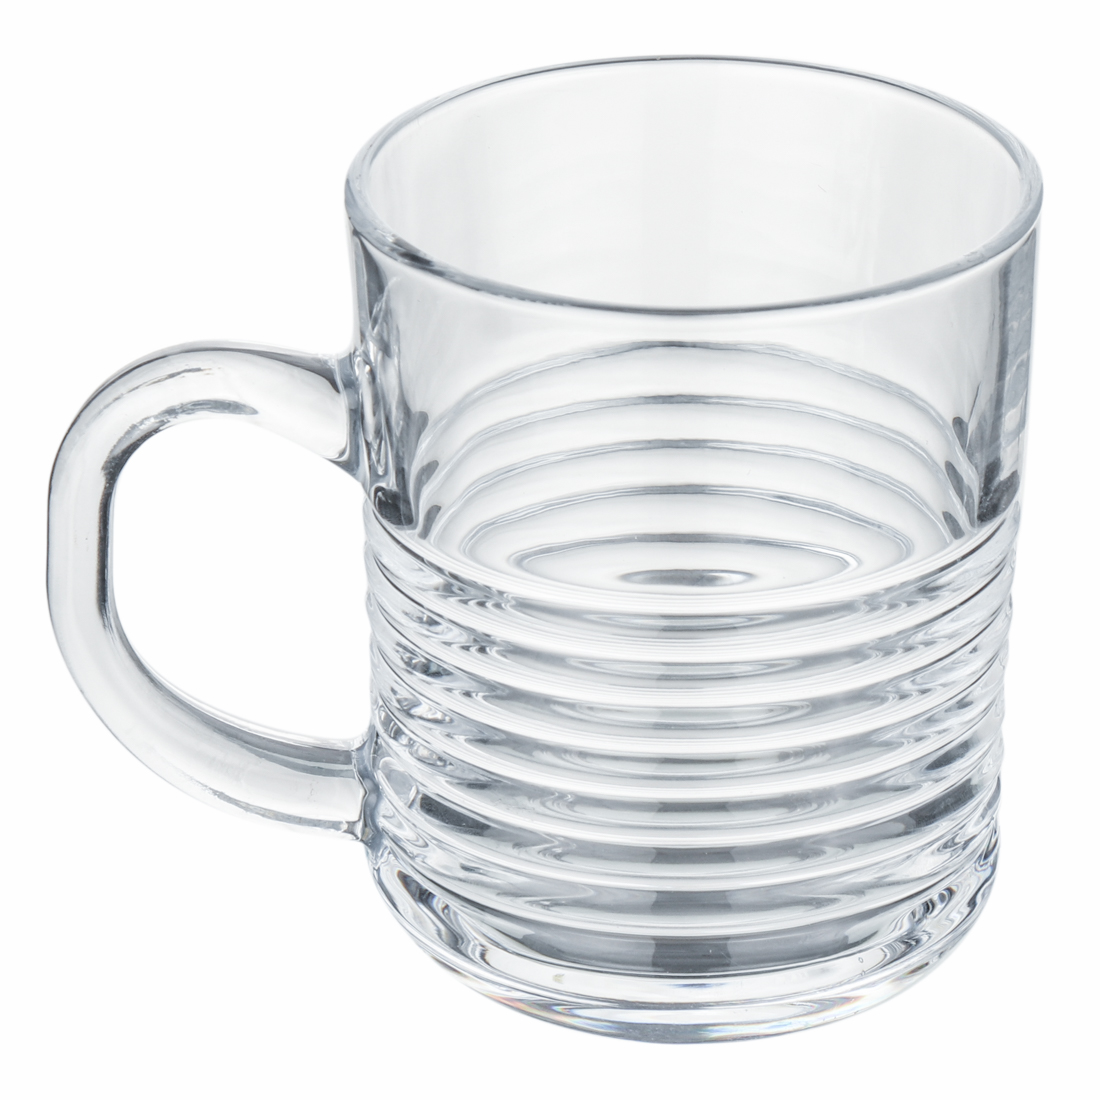 Femora Glass Ring Tea Mug Coffee Mug - Set of 6- 220 ML